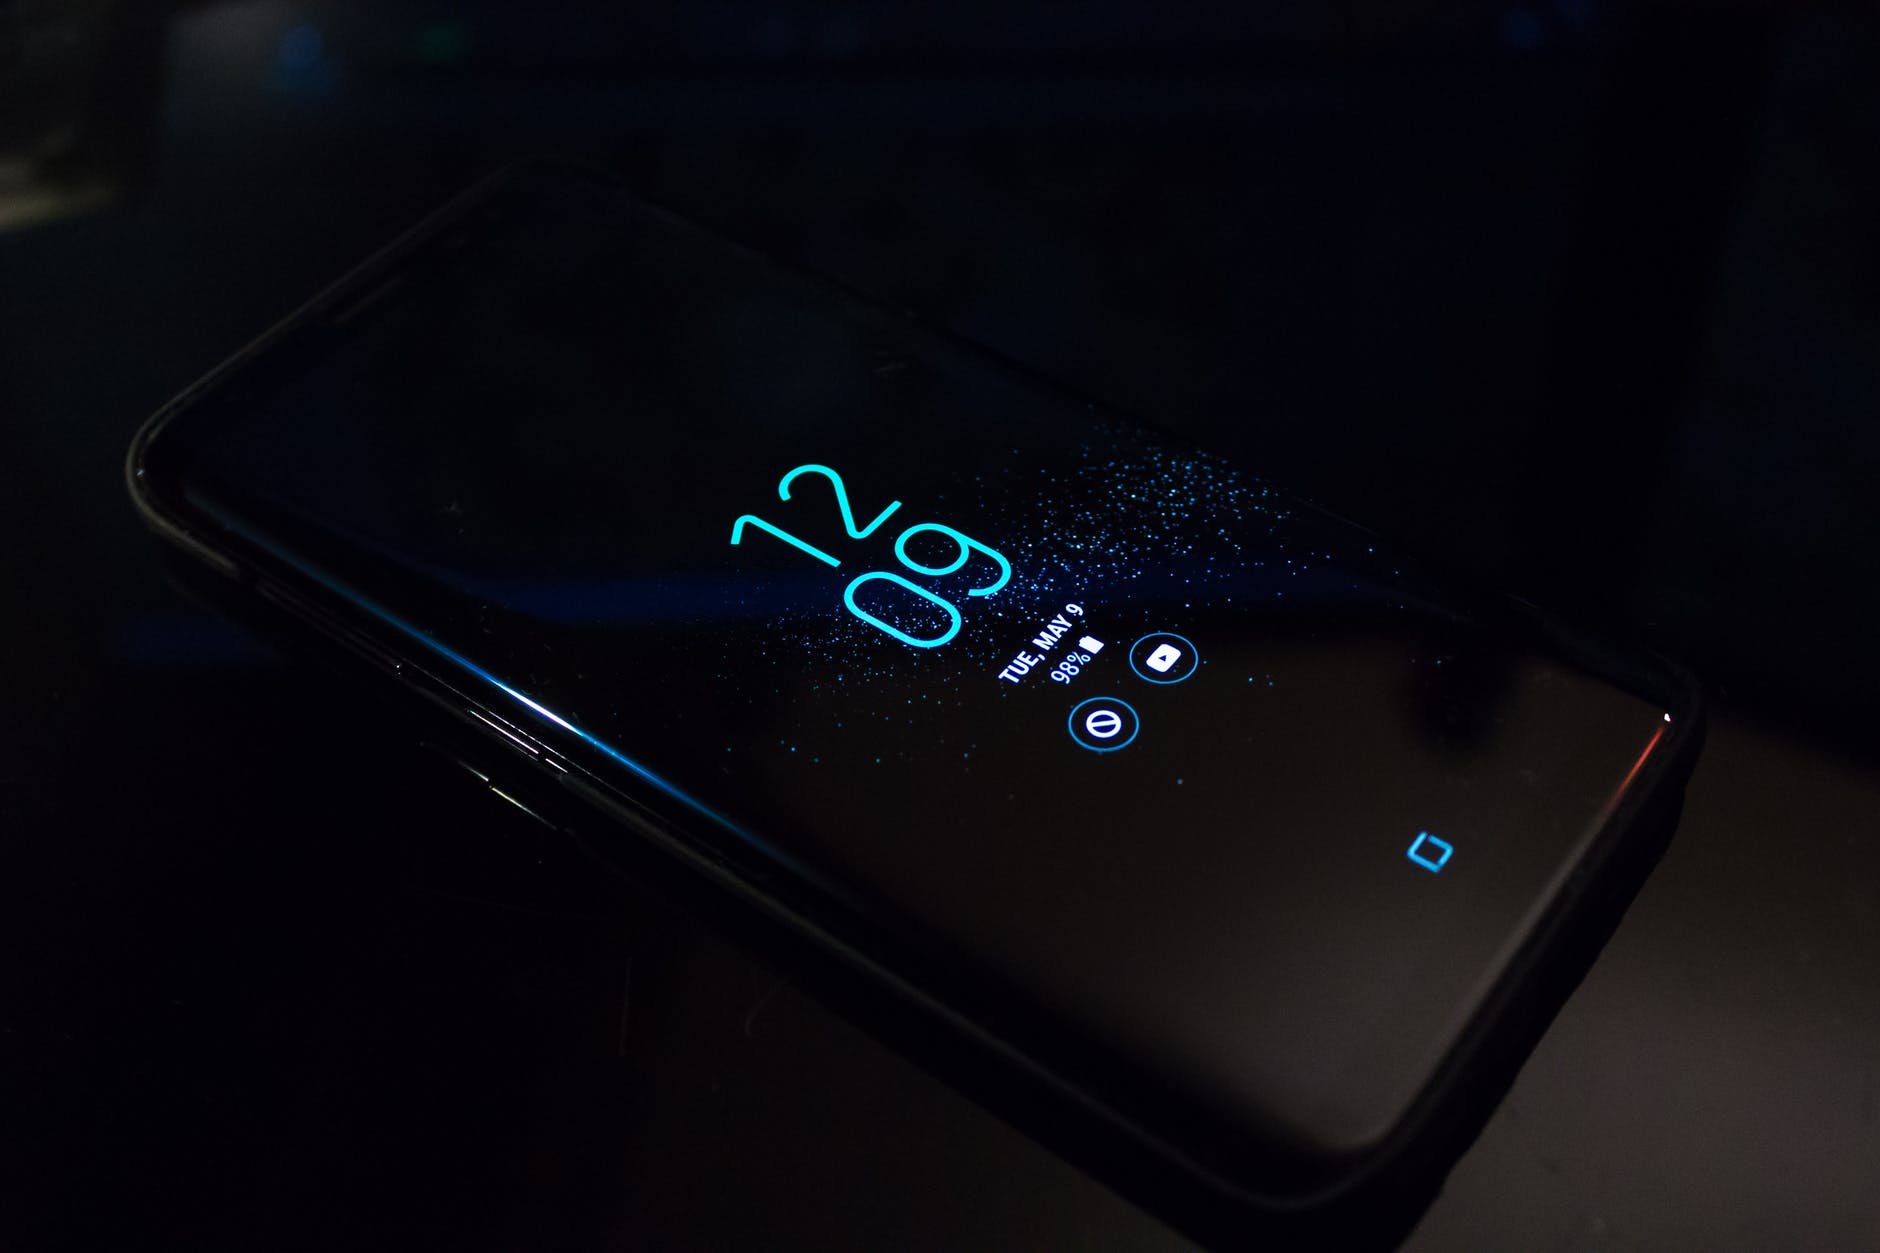 Keep your phone on when you're alone at home at night